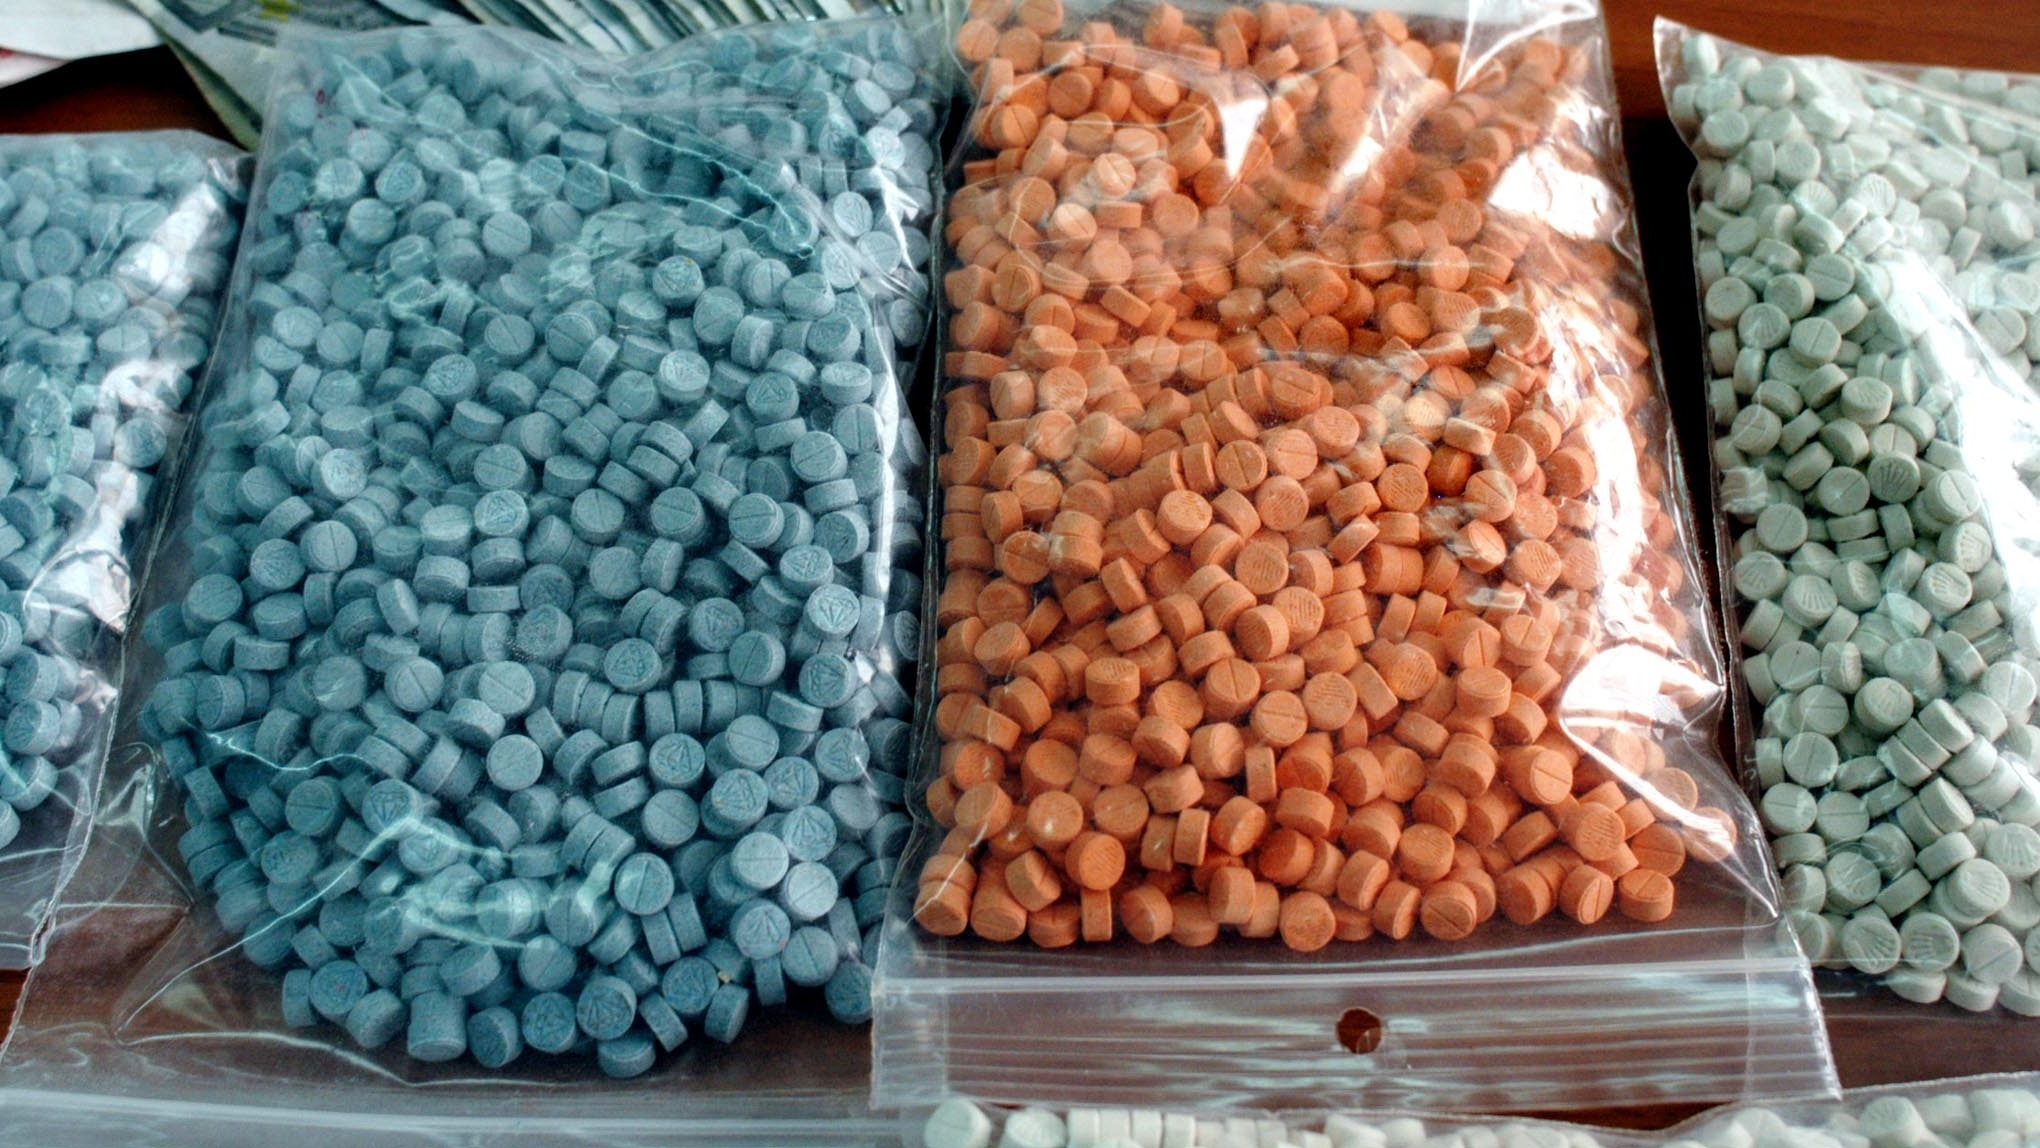 Ecstacy in stock